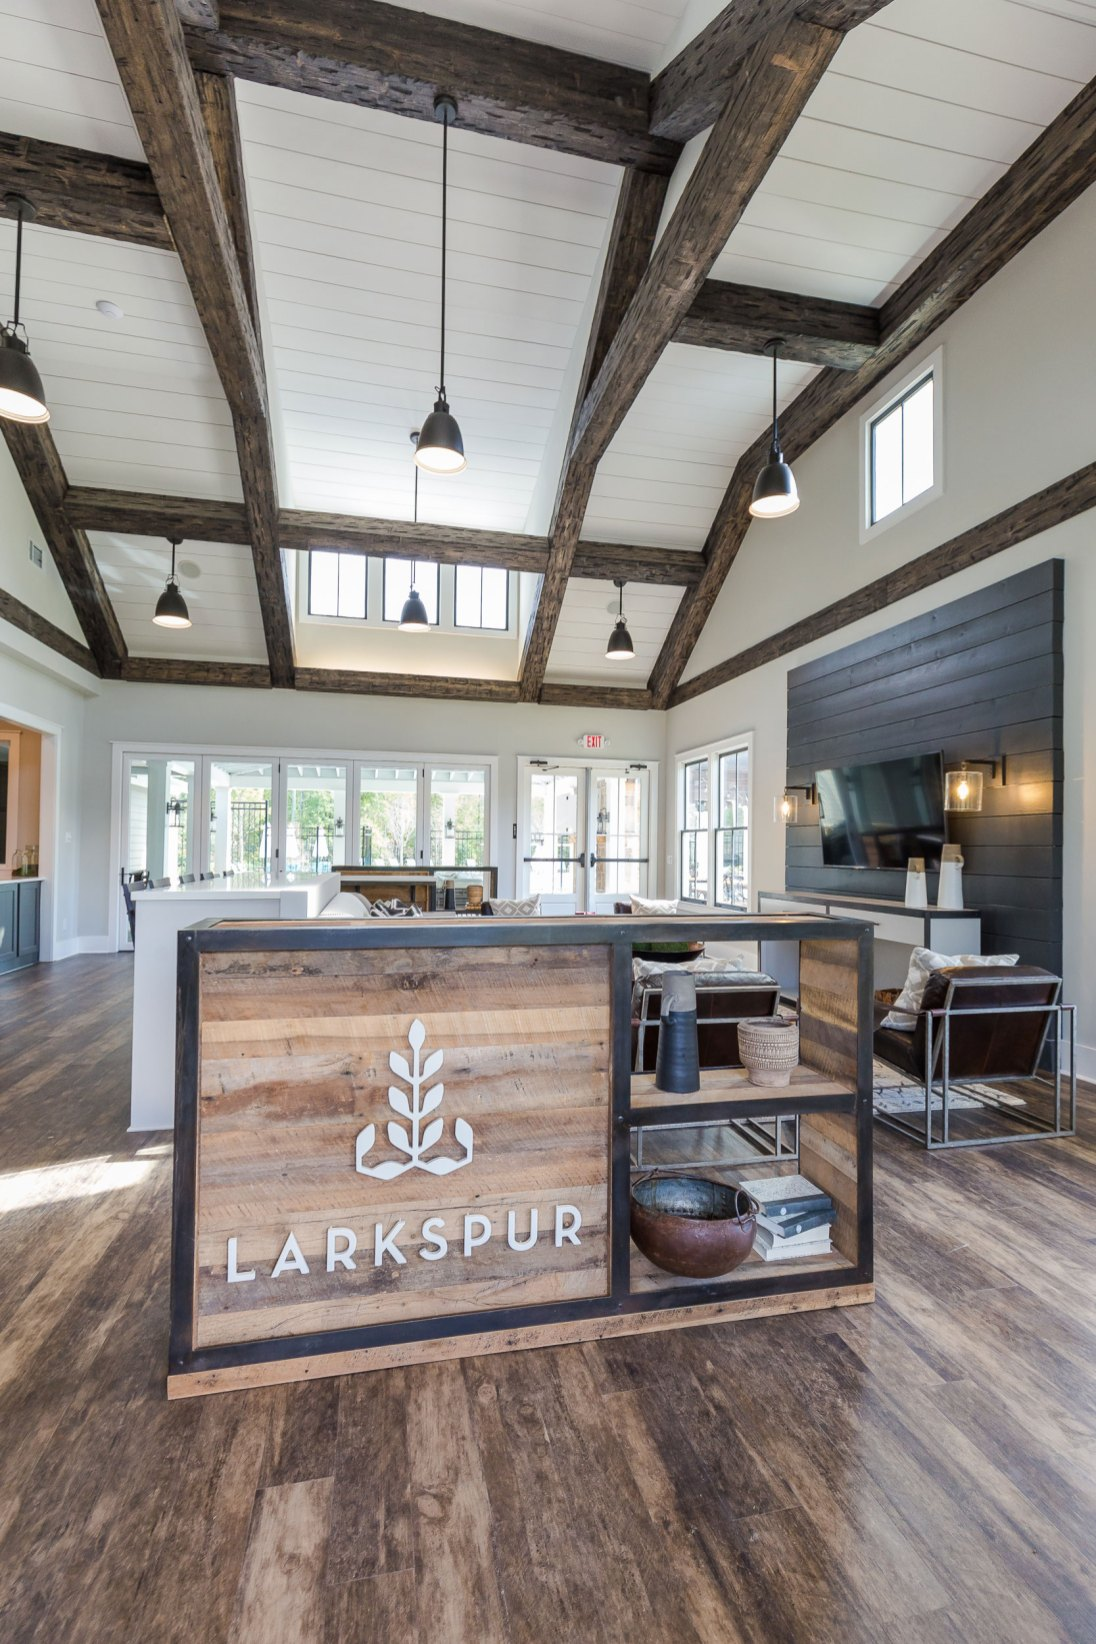 Haven-Design-Works-Atlanta-Edward-Andrews-Larkspur-reclaimed-beams